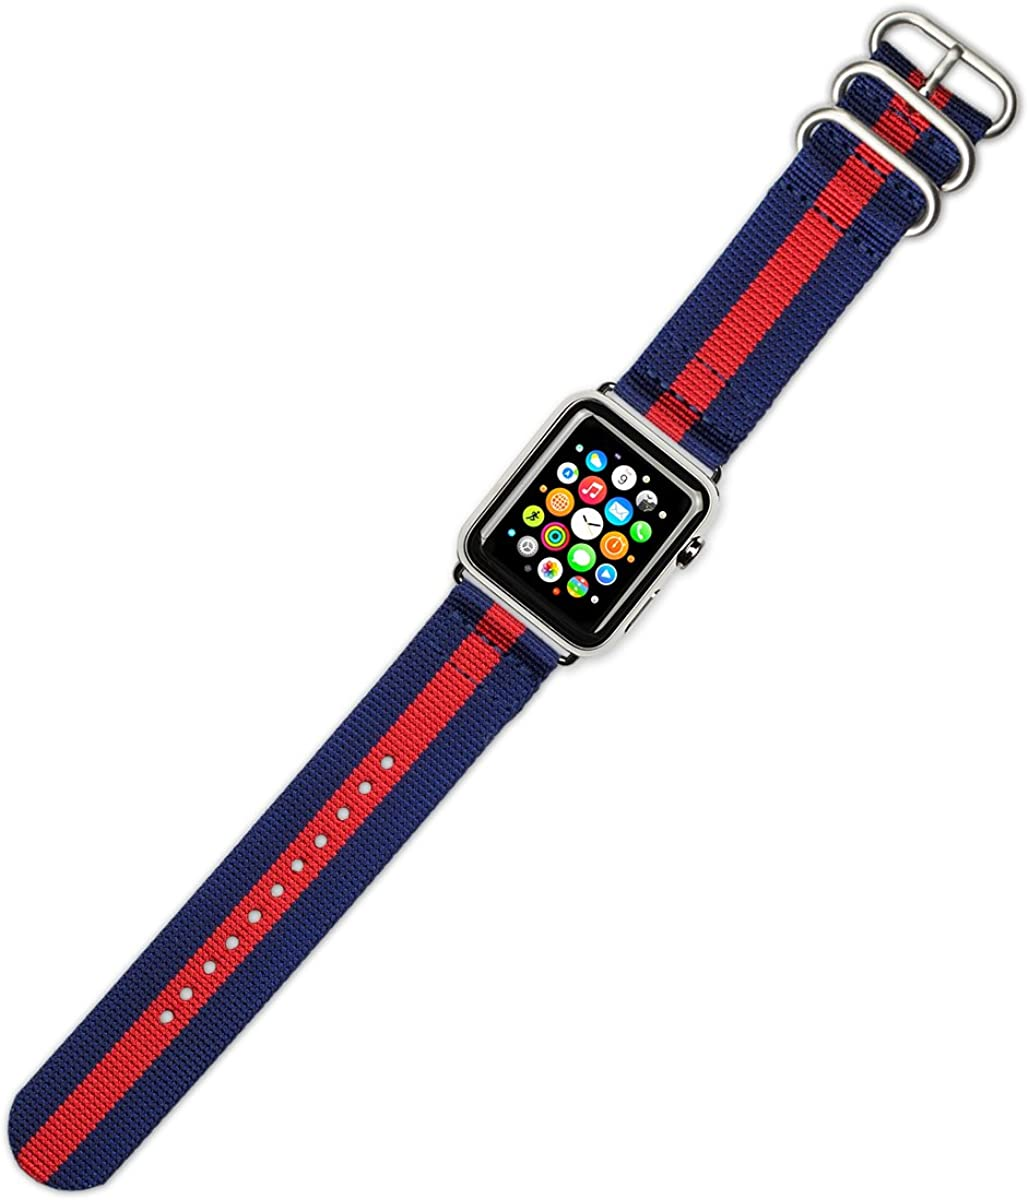 Debeer Watch Band - 2-Piece Nylon - Navy with Red Stripe - Compatible with Apple 38mm & 40mm Series 1, 2, 3, 4, 5, and 6 Apple Watch [Silver Adapters]